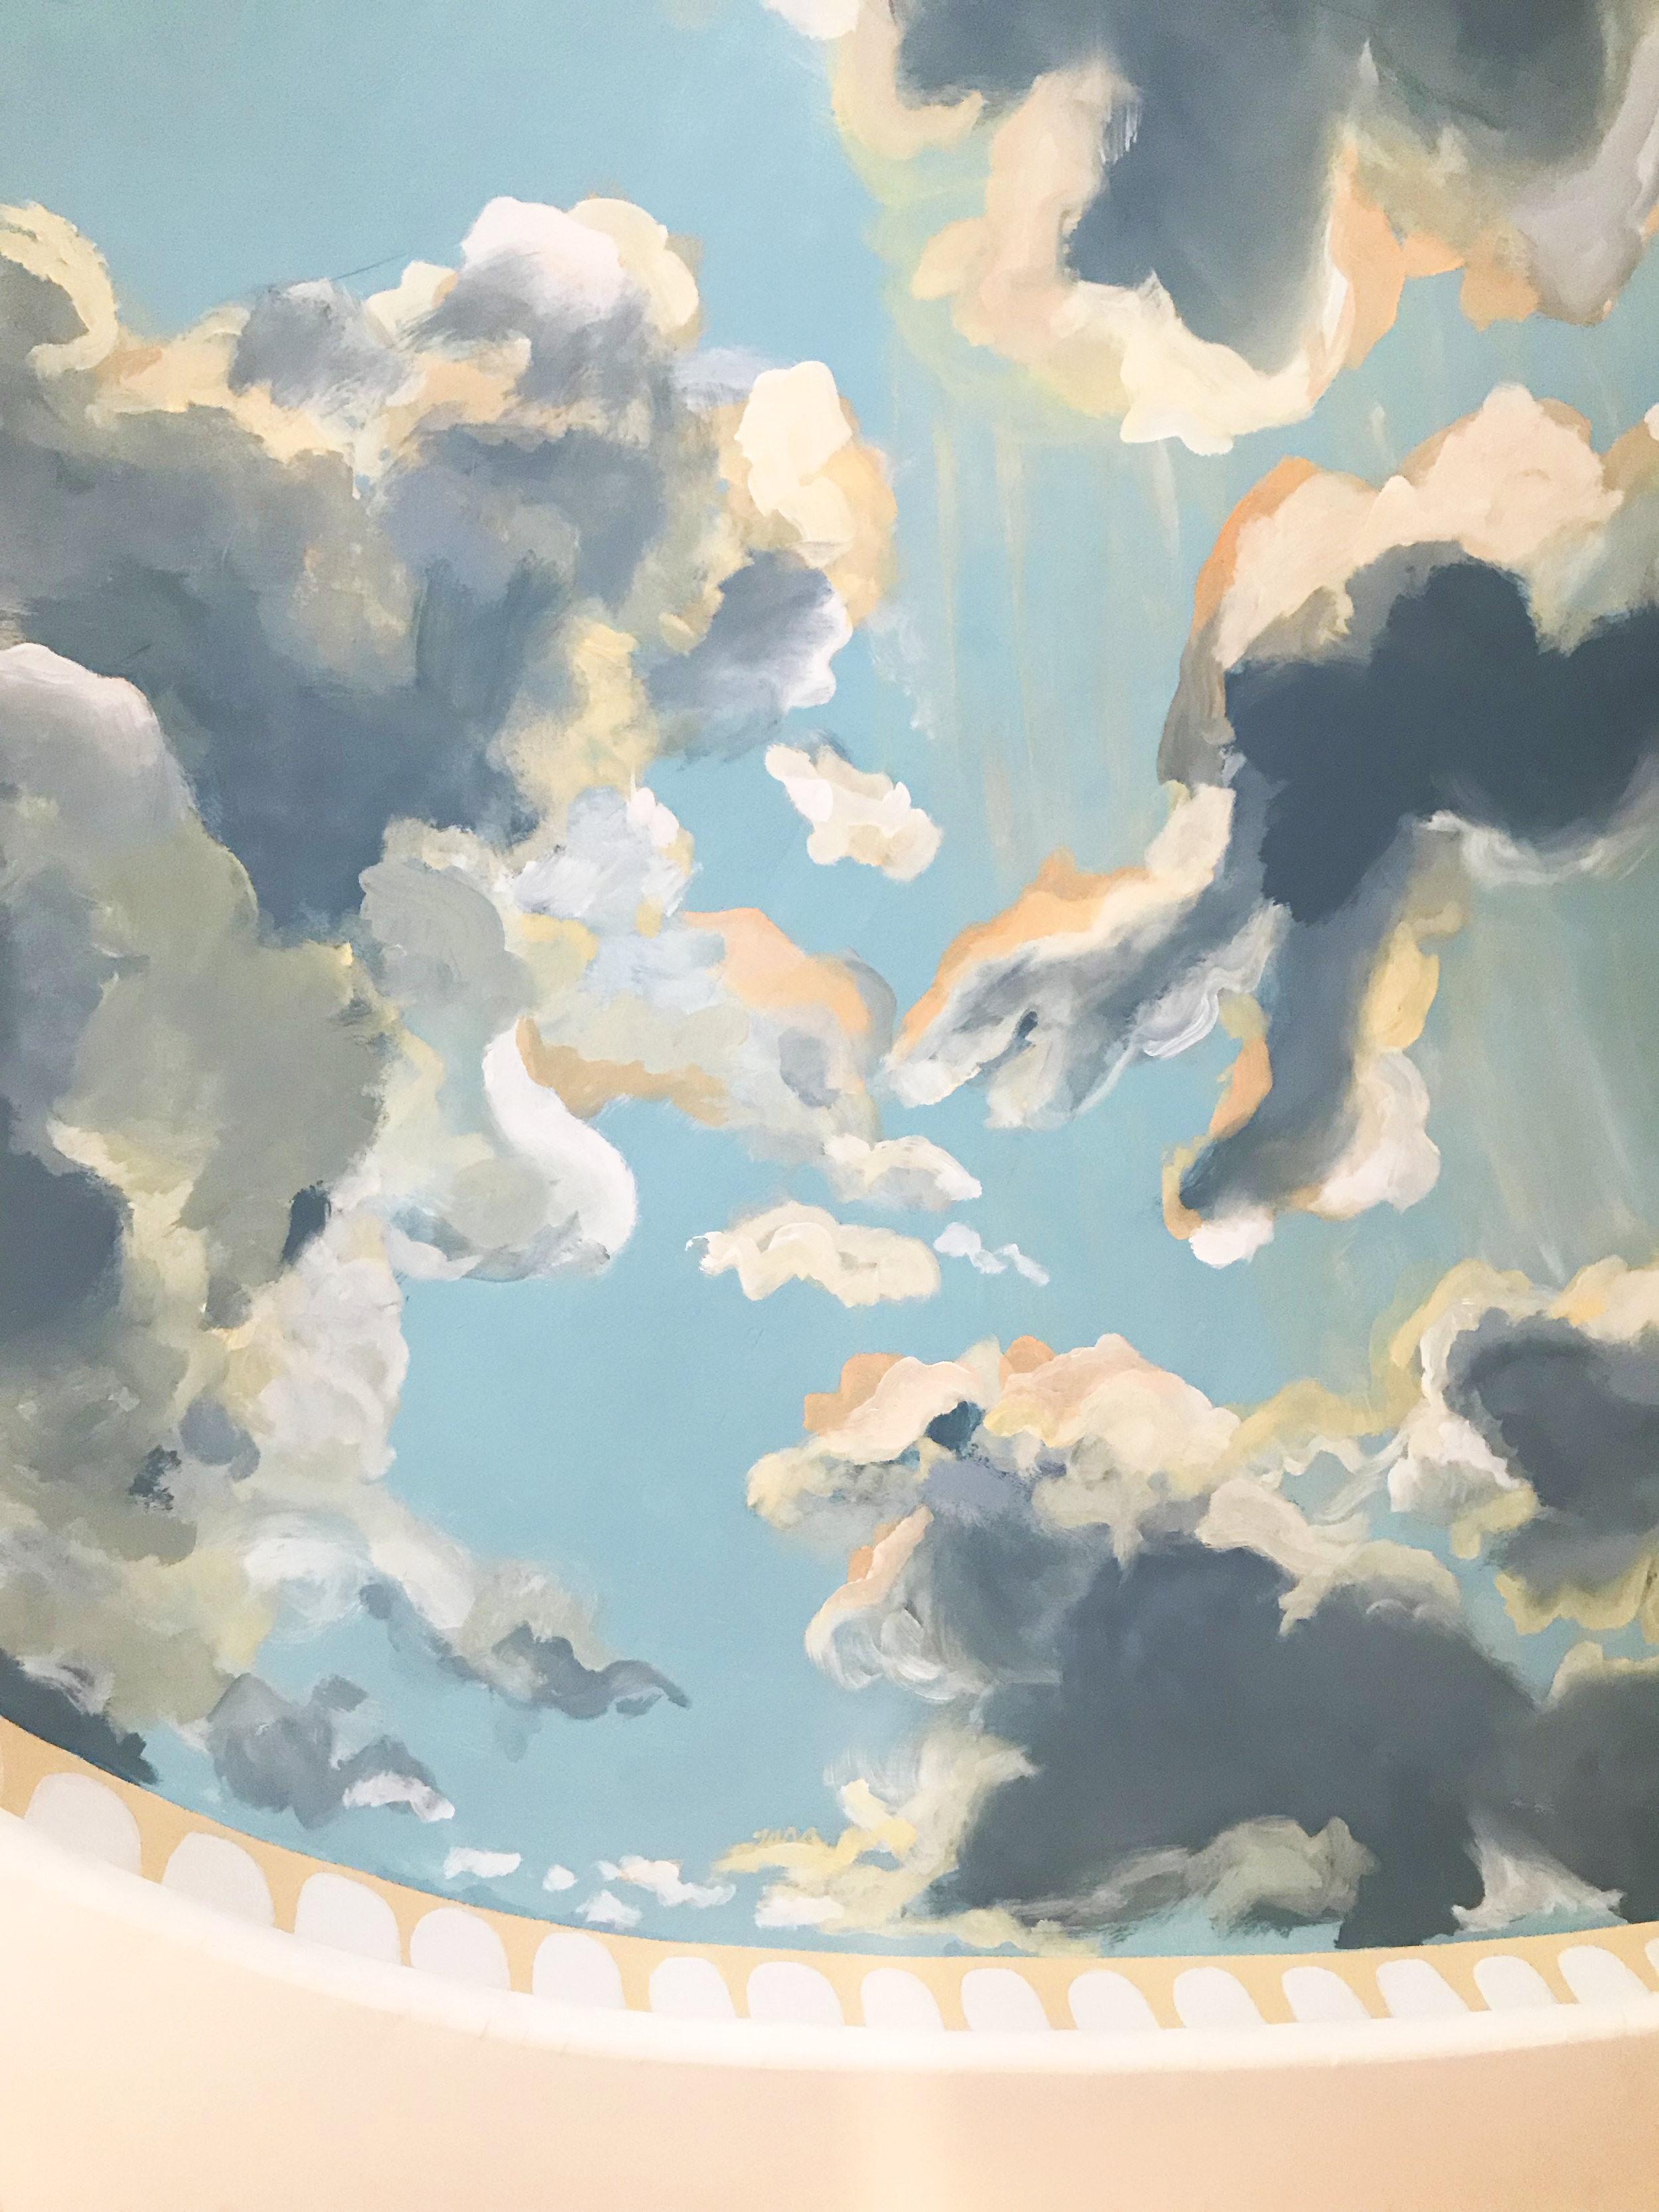 2019_04_Kuni_Bedroom Sky 3.png